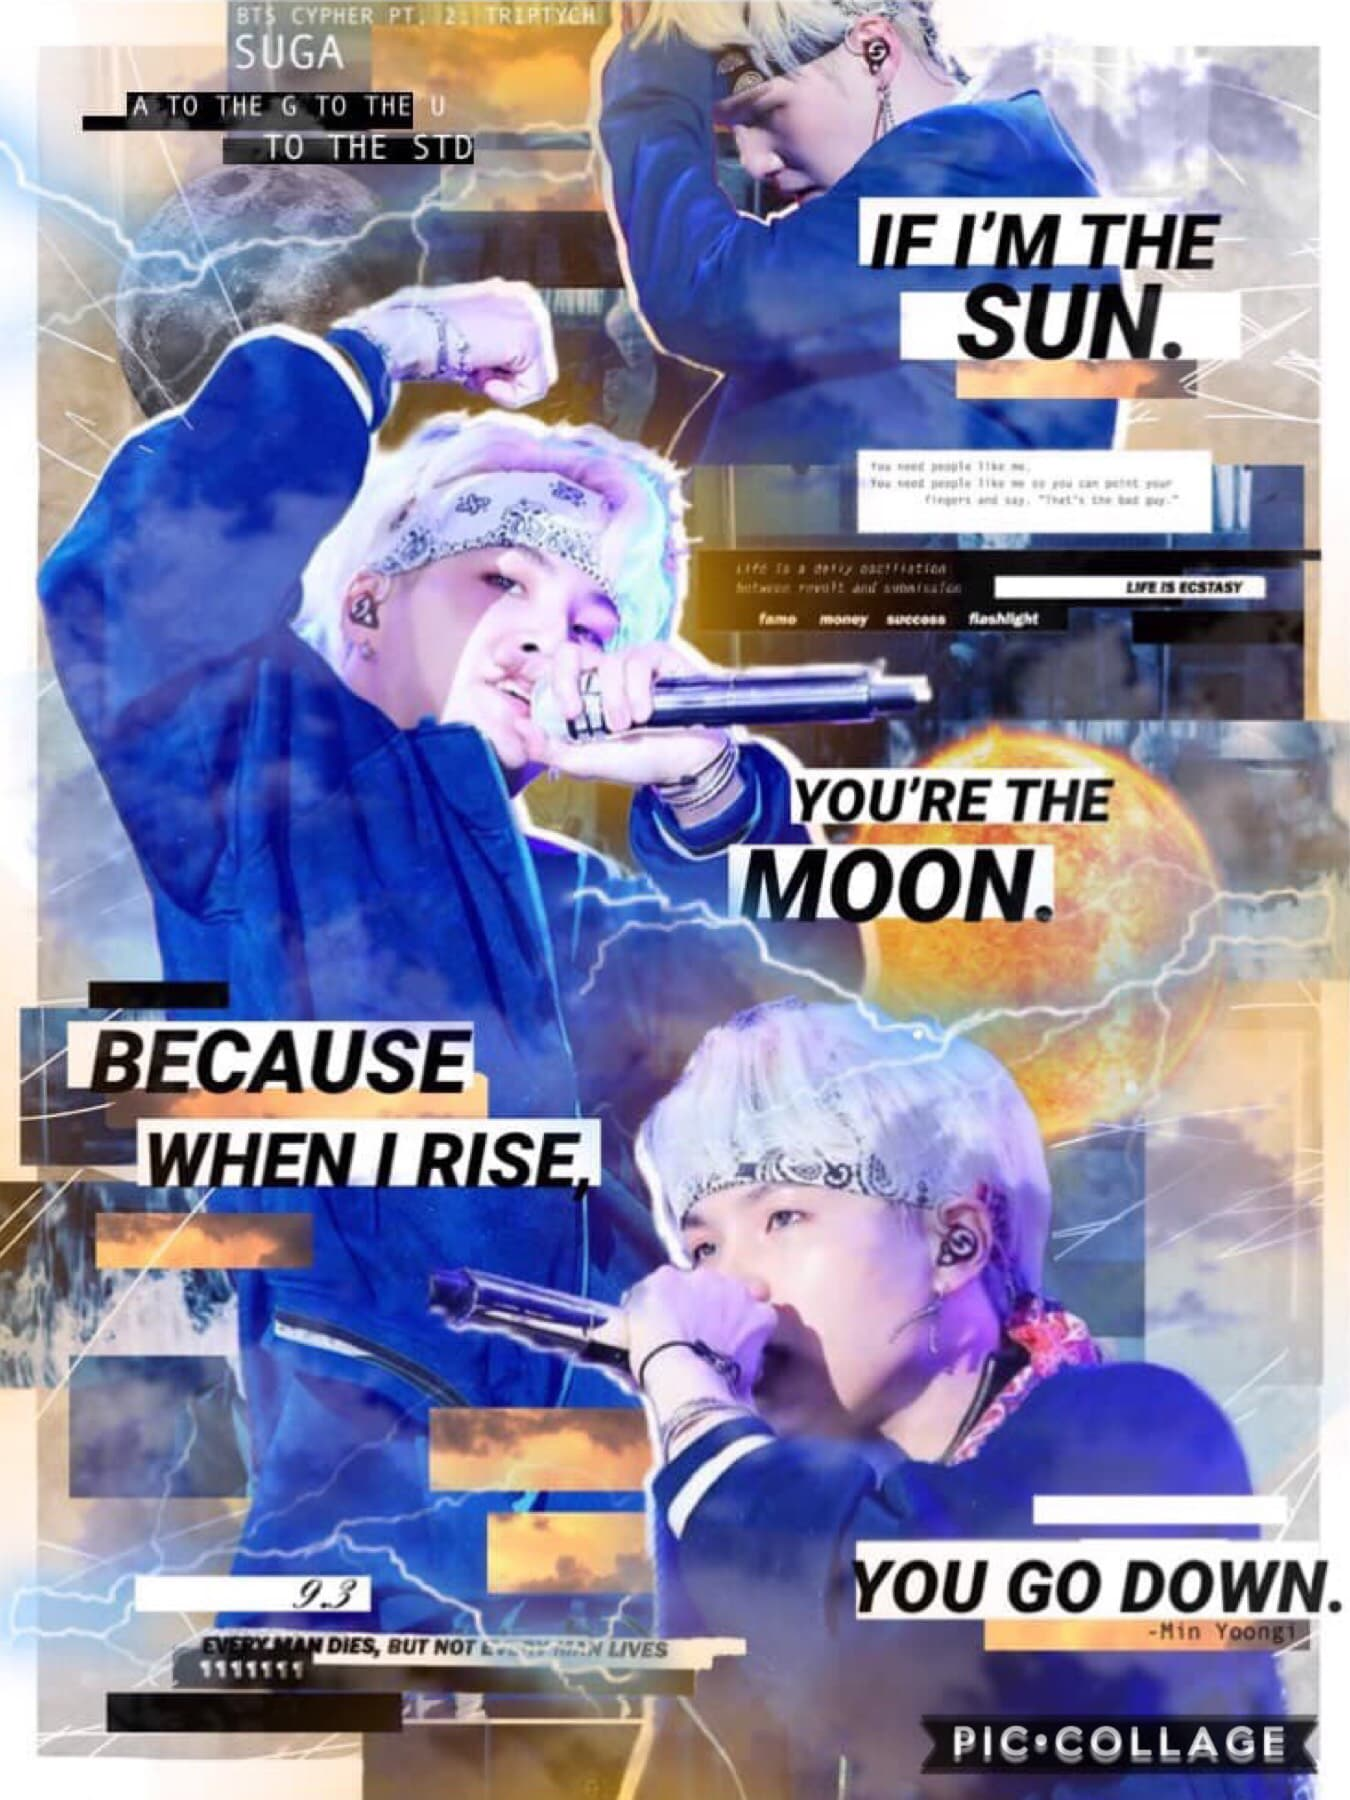 🎂[3.9.93] HAPPY BDAY YOONGIIIIIII!! With a fierce stance as a rapper, but a heart softer than a kitten, you have one of the most enchanting auras on stage that I can't even begin to describe. Remember, we love you💫